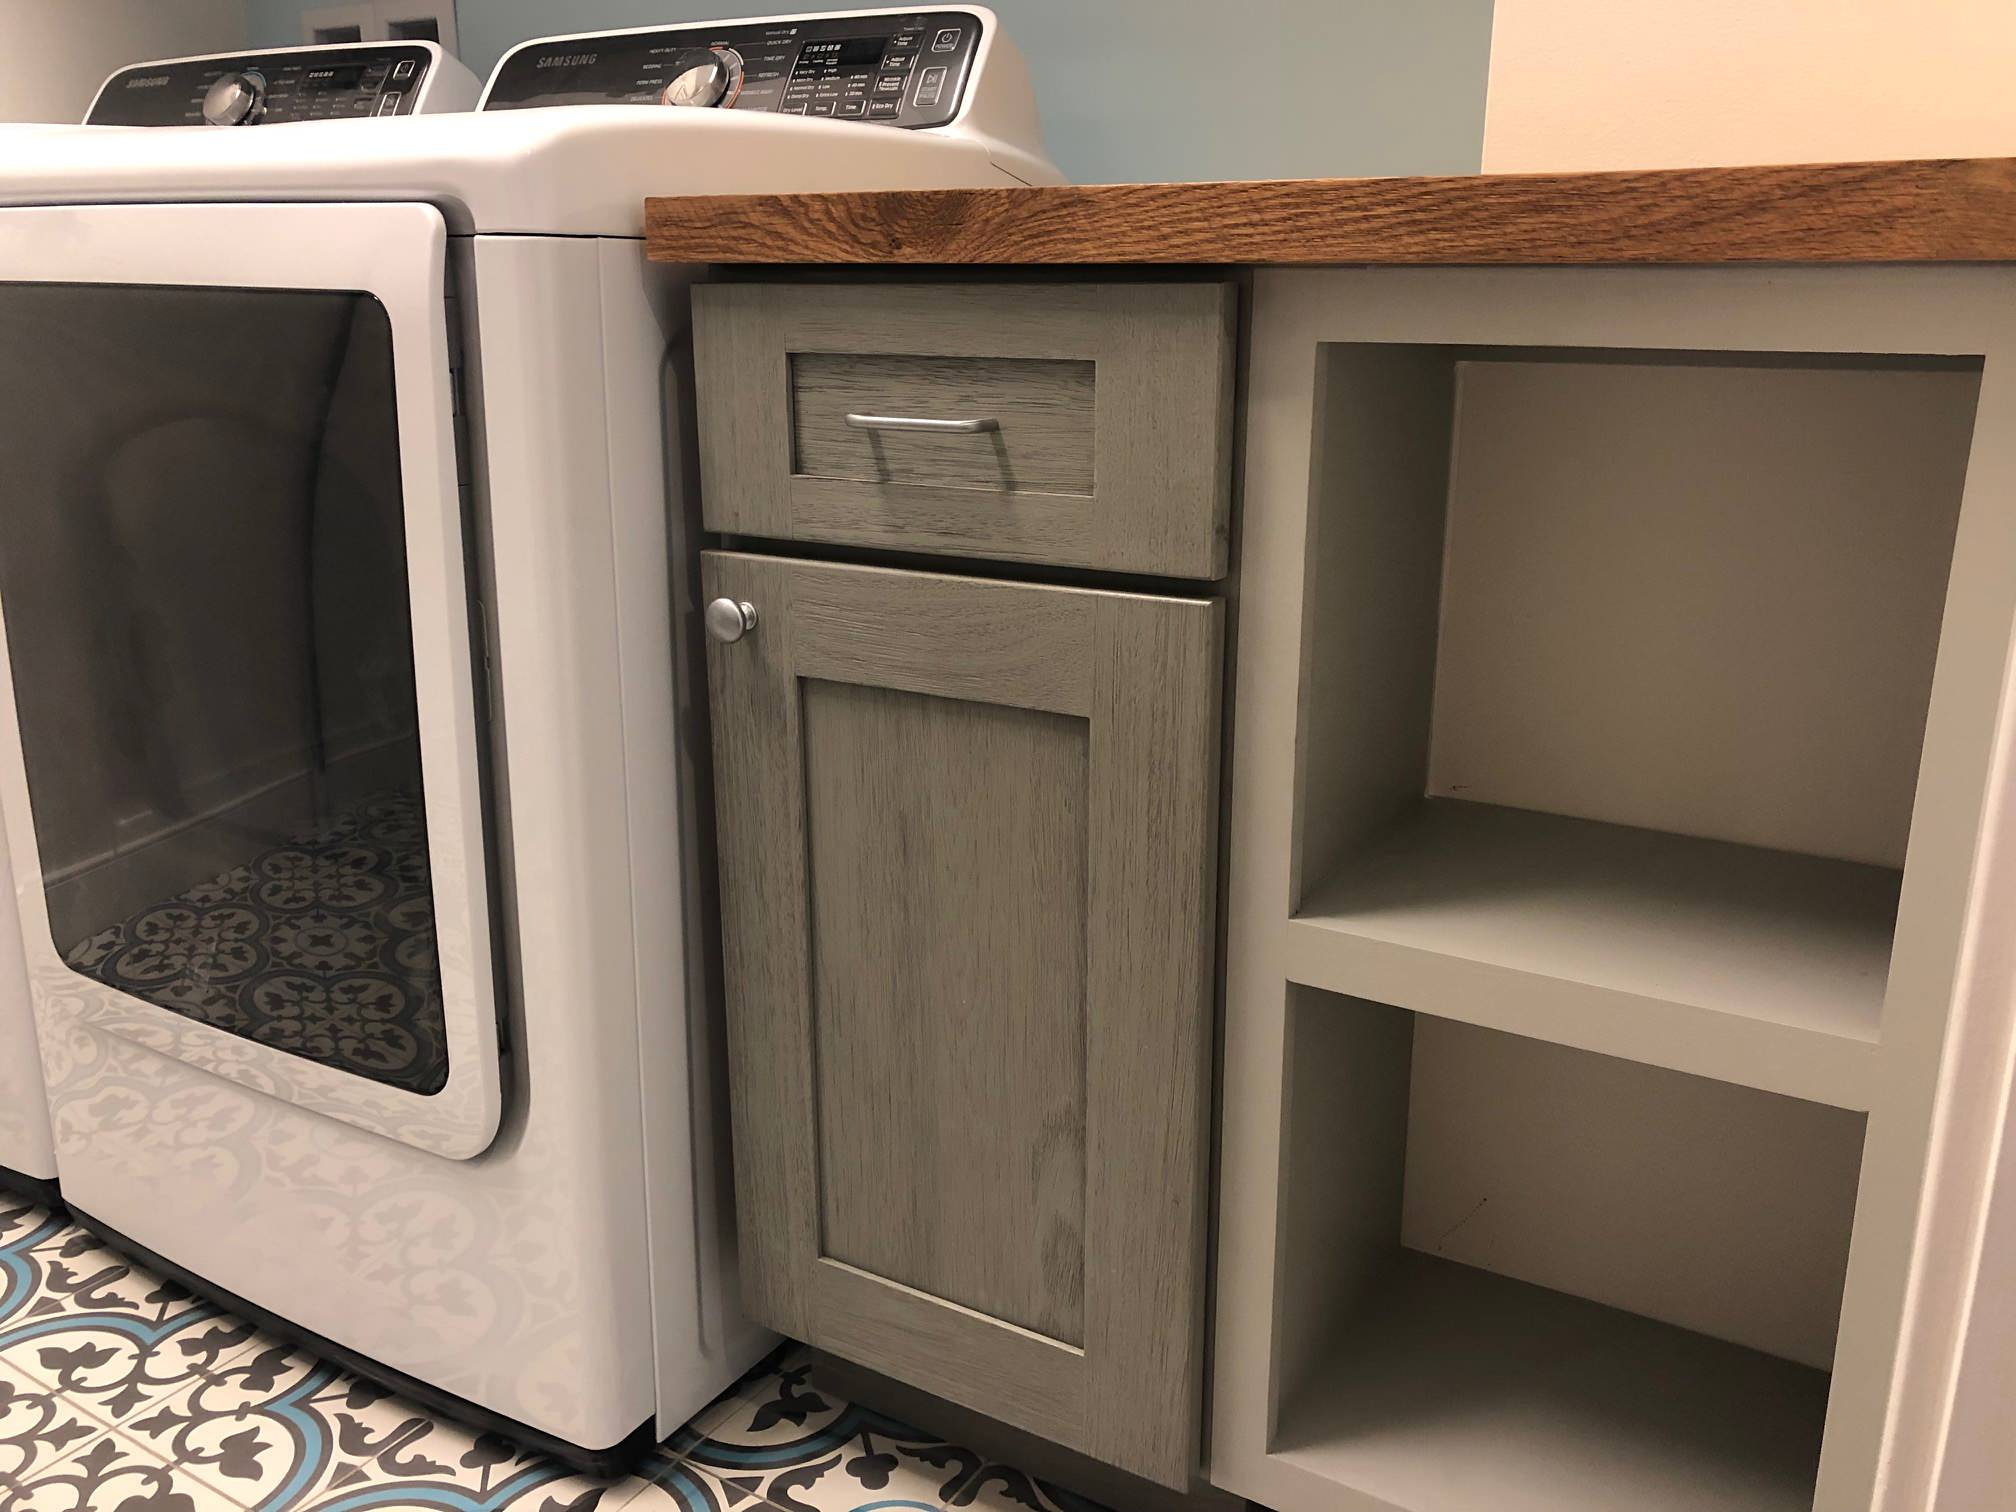 Potomac Yards Laundry Room